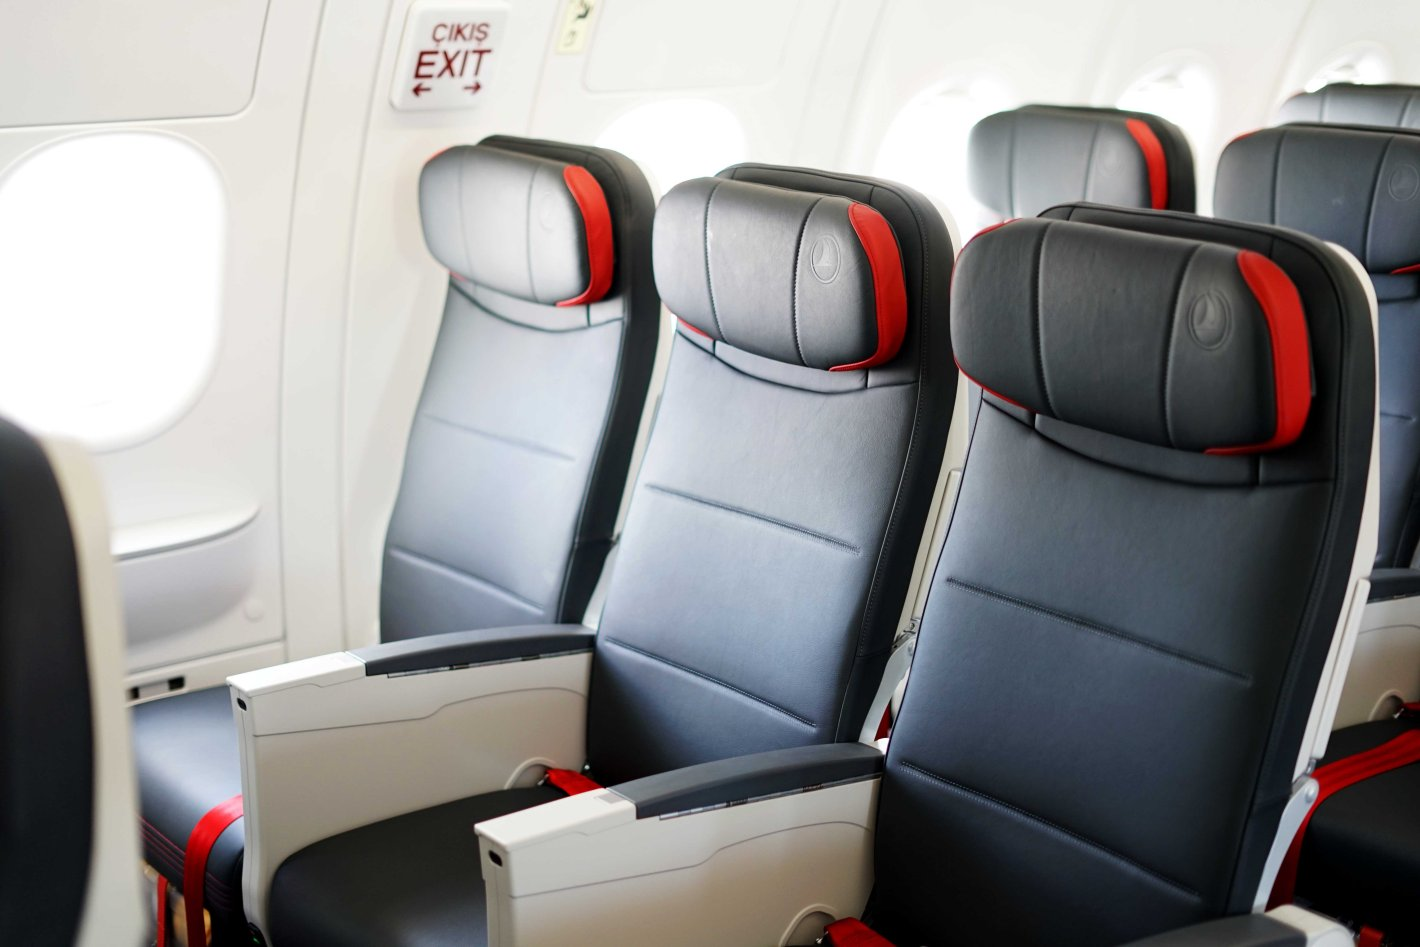 Turkish Airlines Airbus A321neo Economy Class